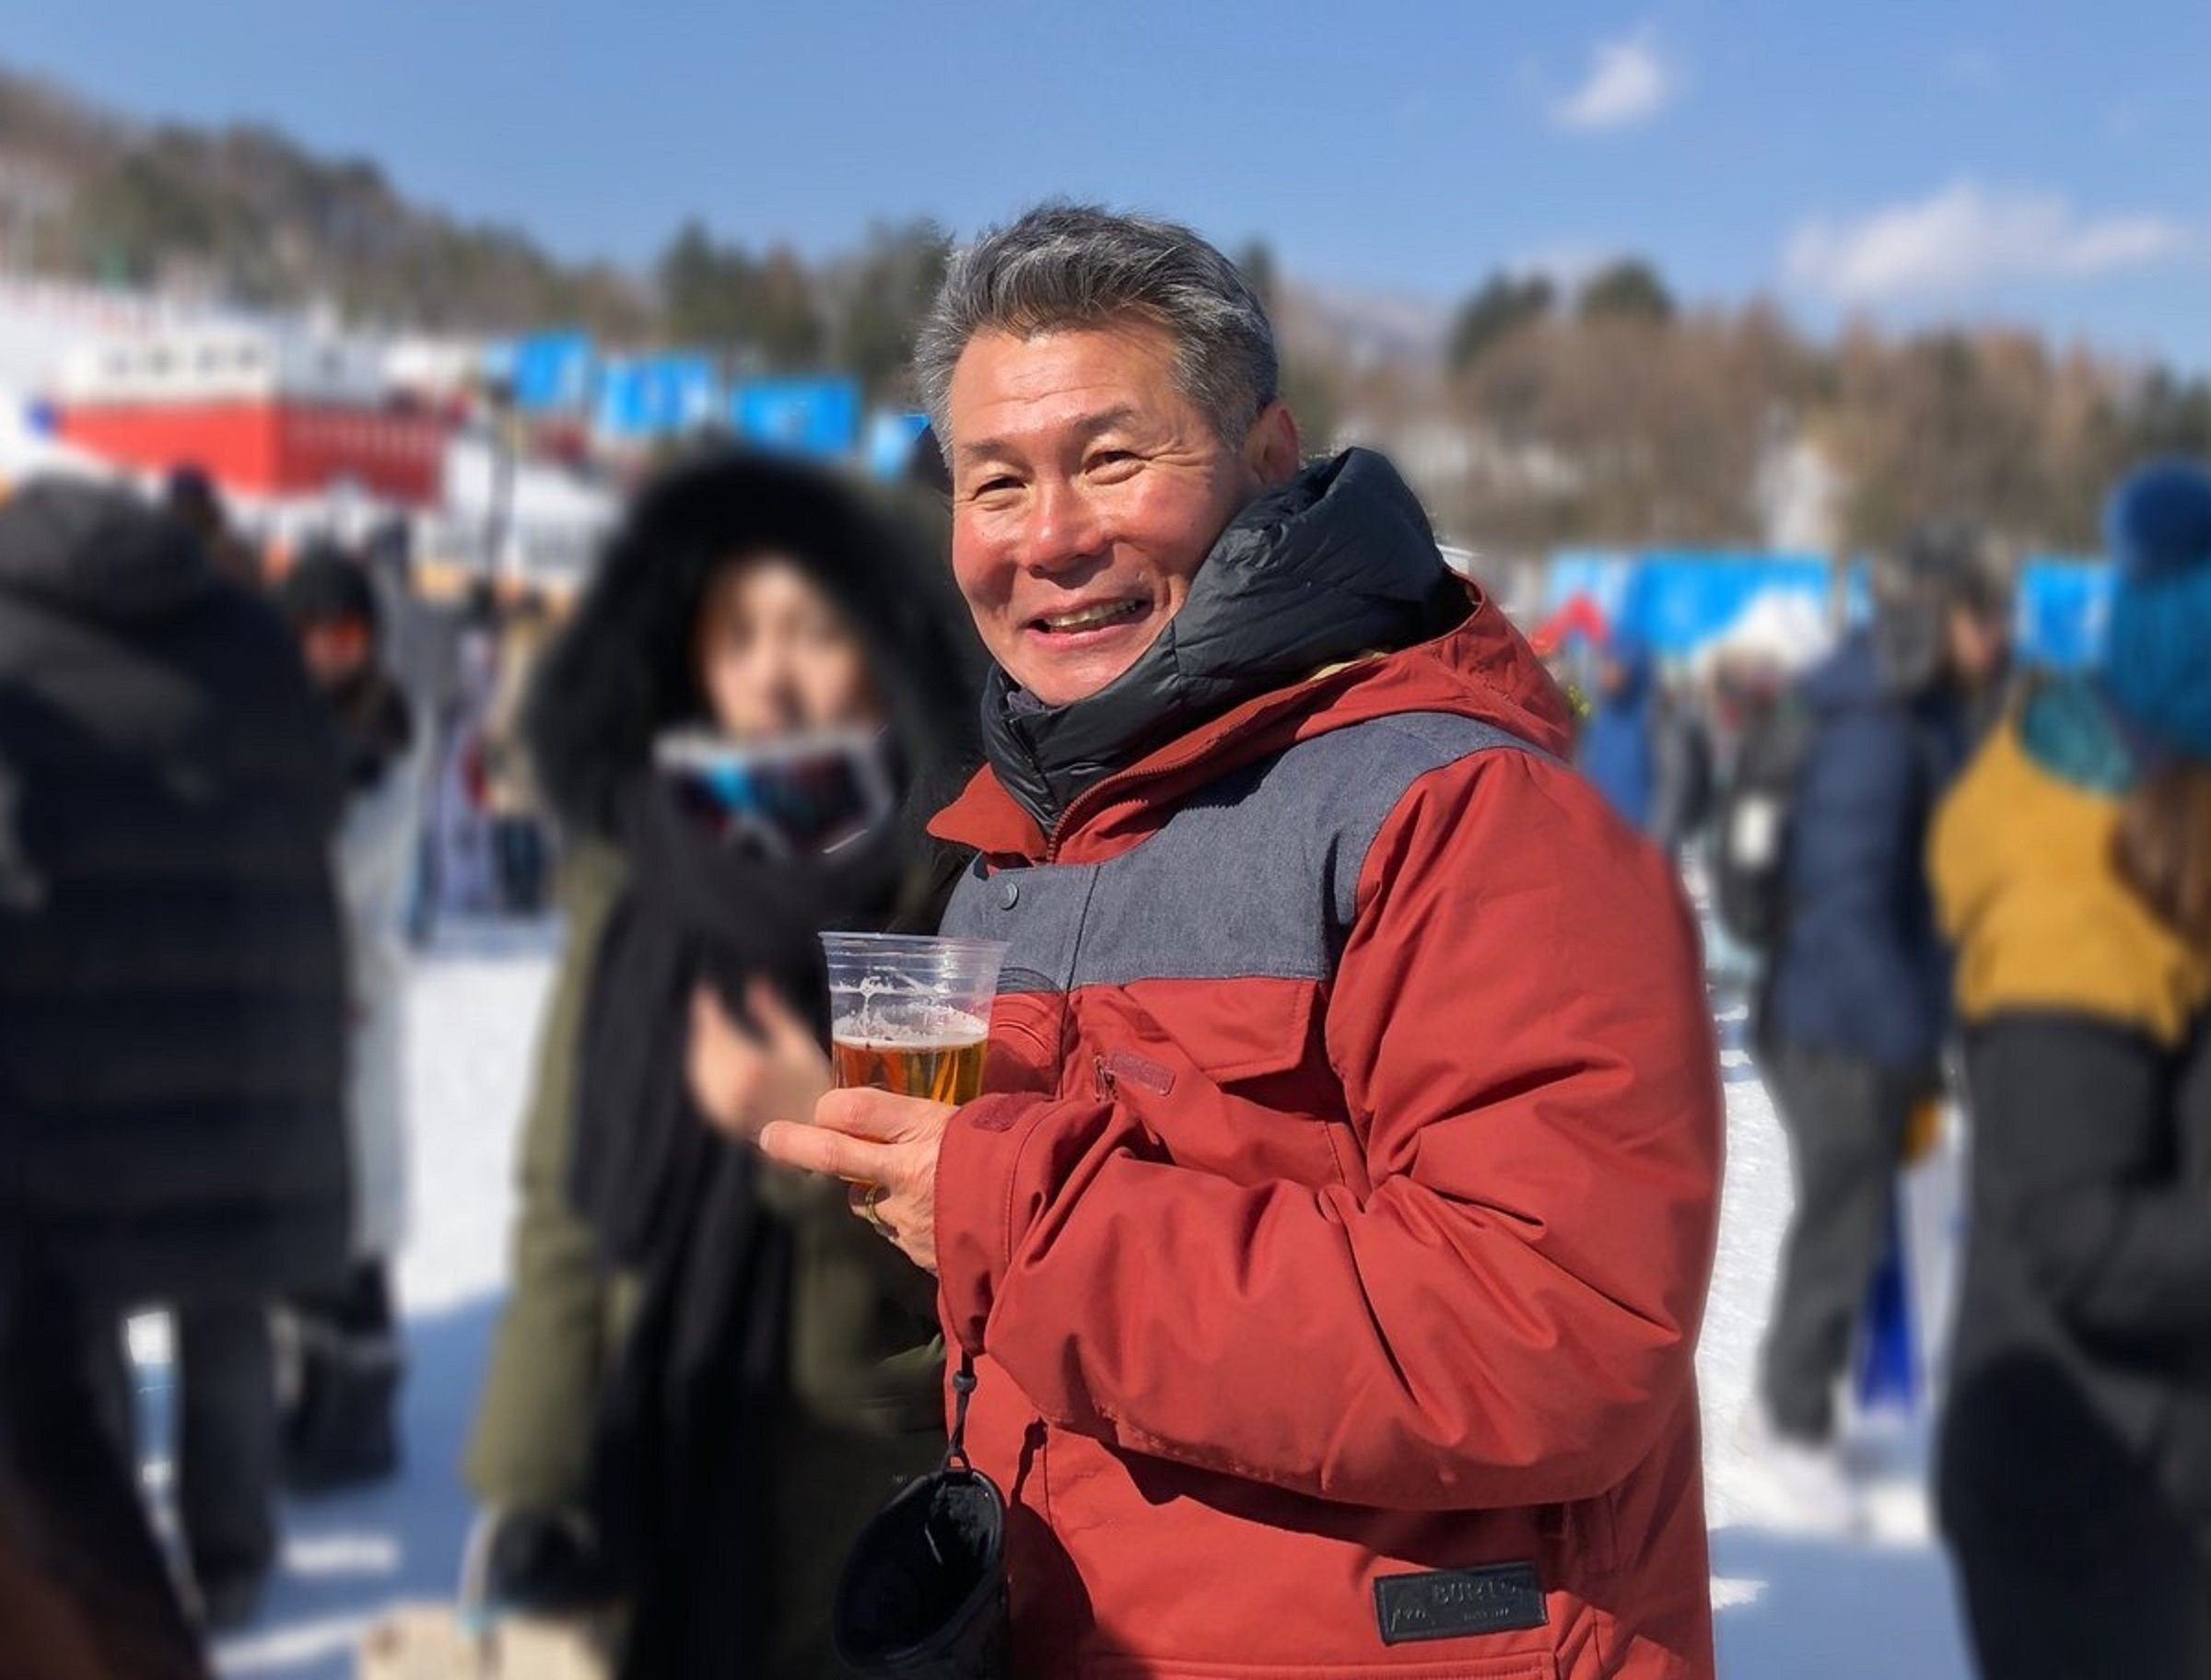 Chloe Kim's father, Jong Jin Kim, celebrating his daughter's Olympic's win with a cold beer.